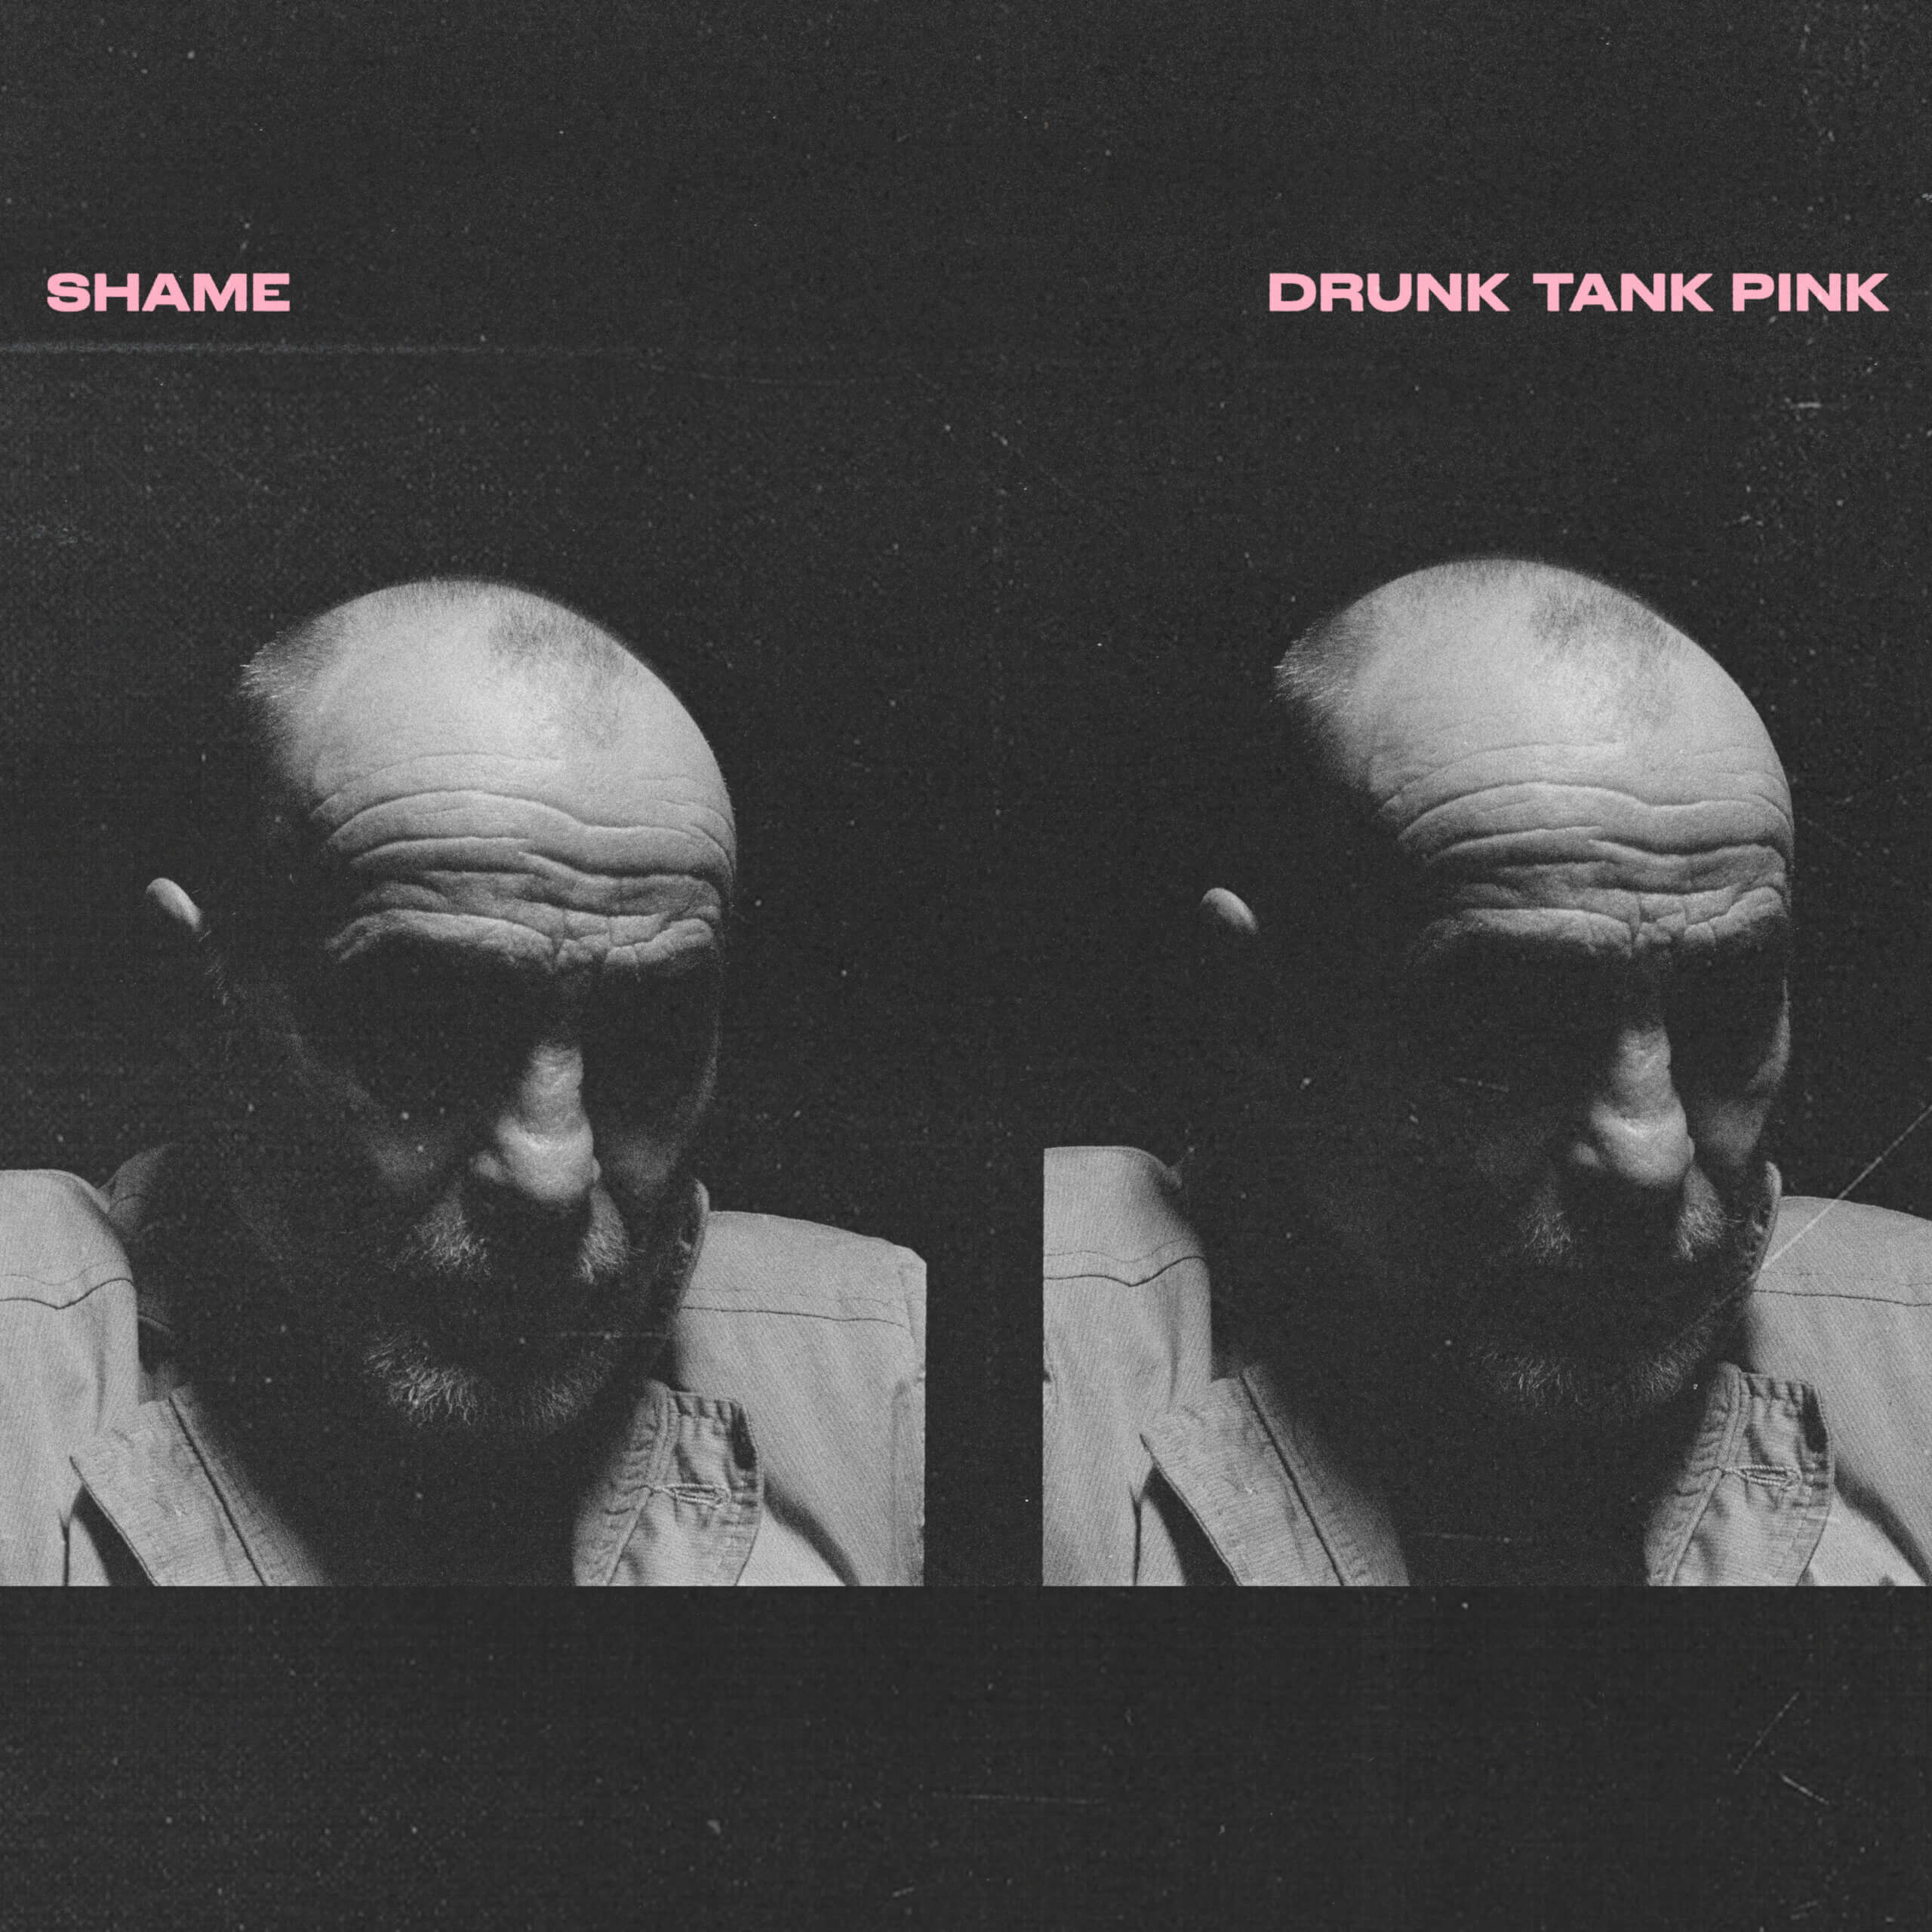 Drunk Tank Pink by Shame album review by Adam Williams for Northern Transmissions